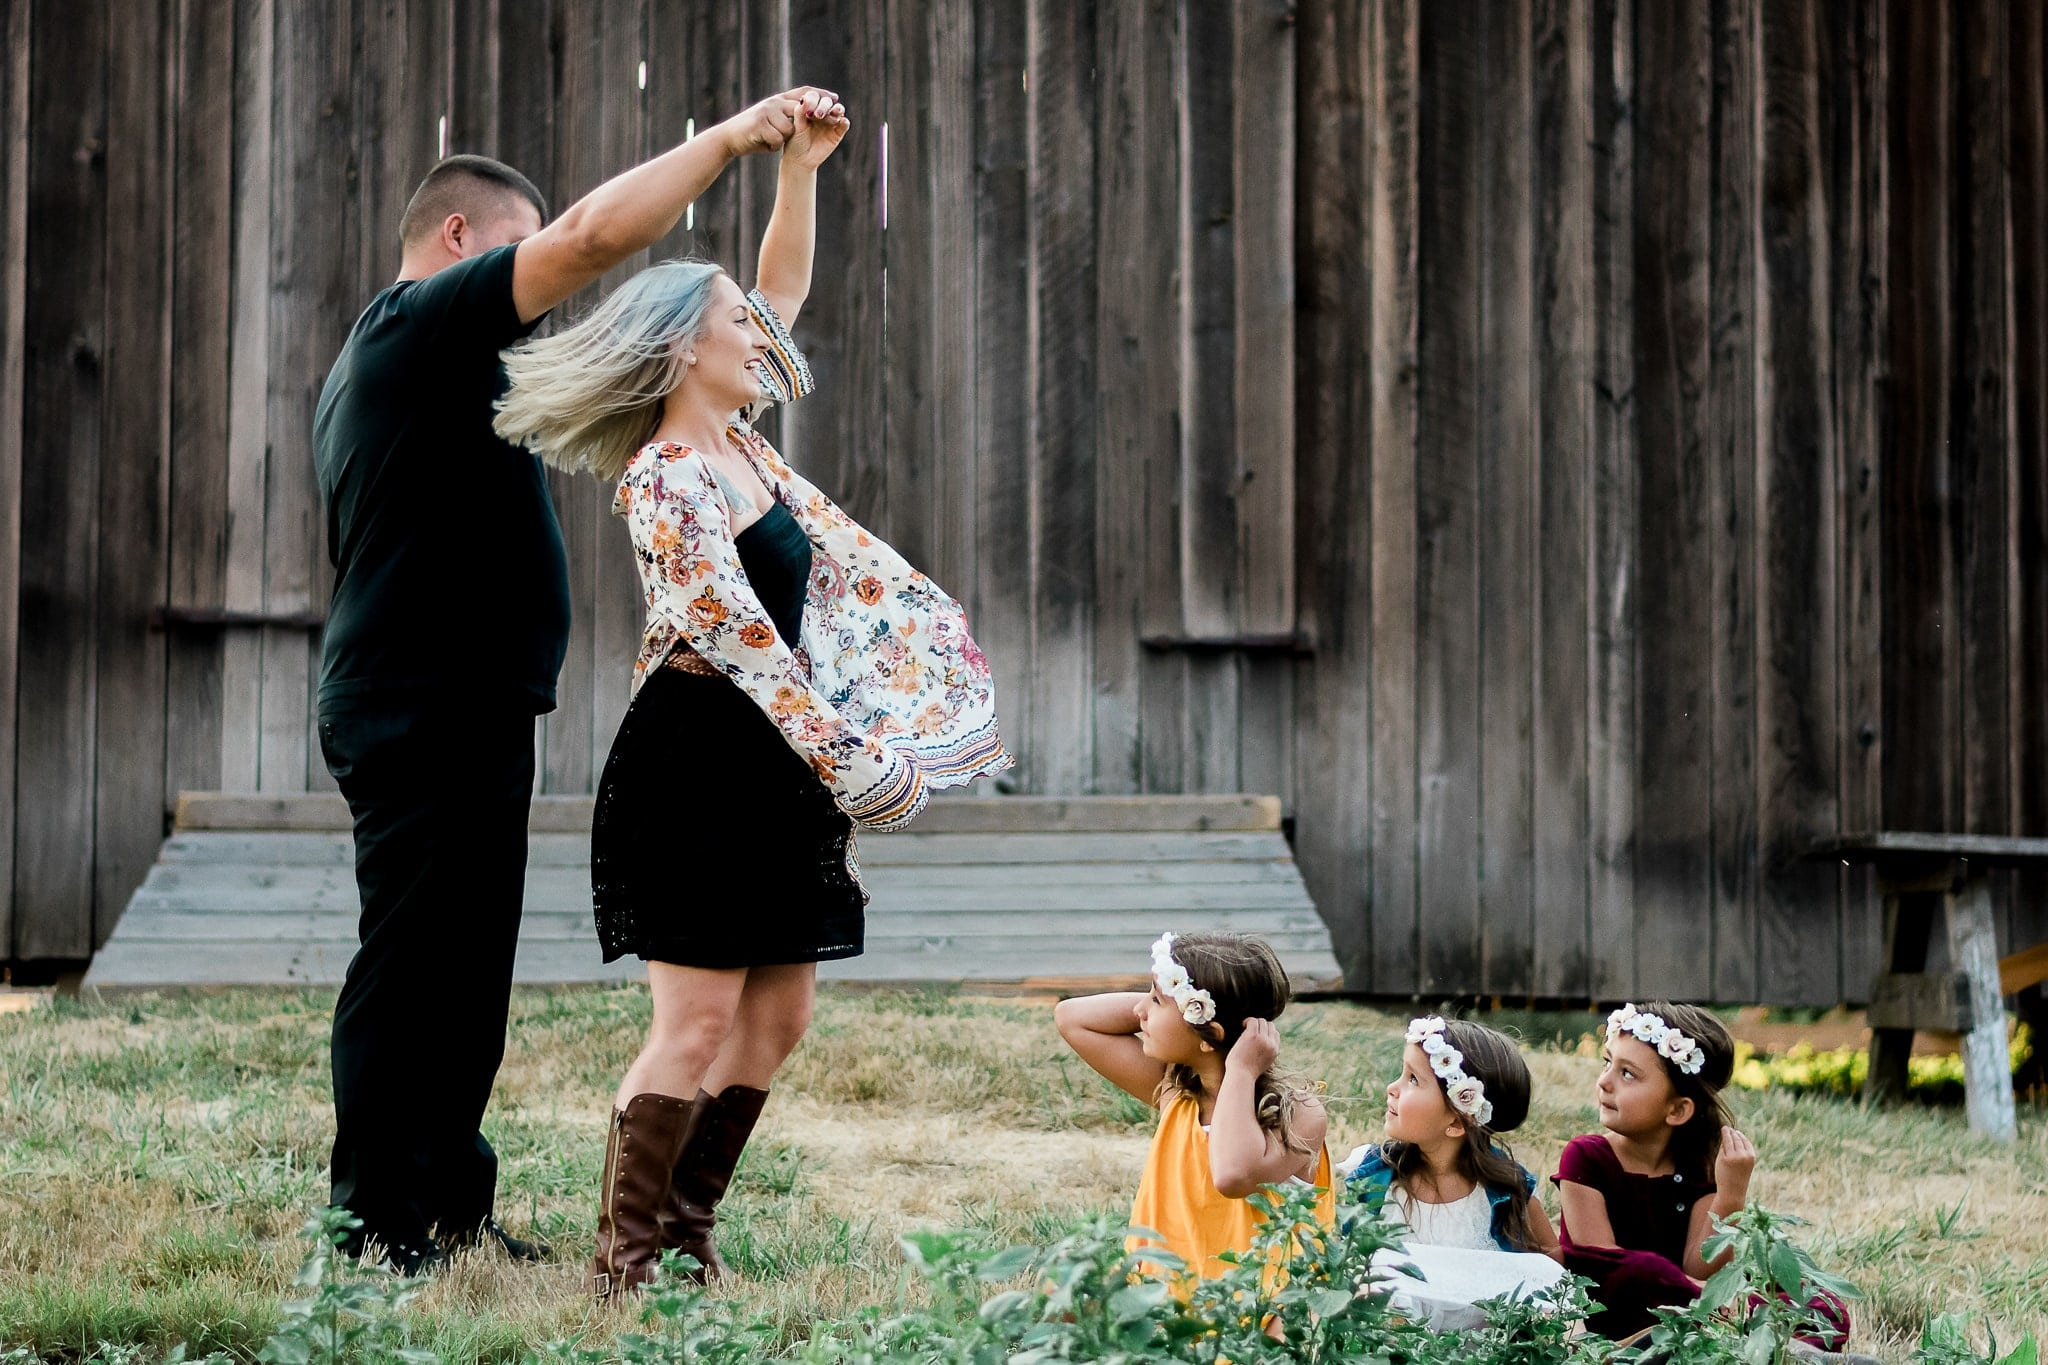 A family posing for a photoshoot by a rustic barn